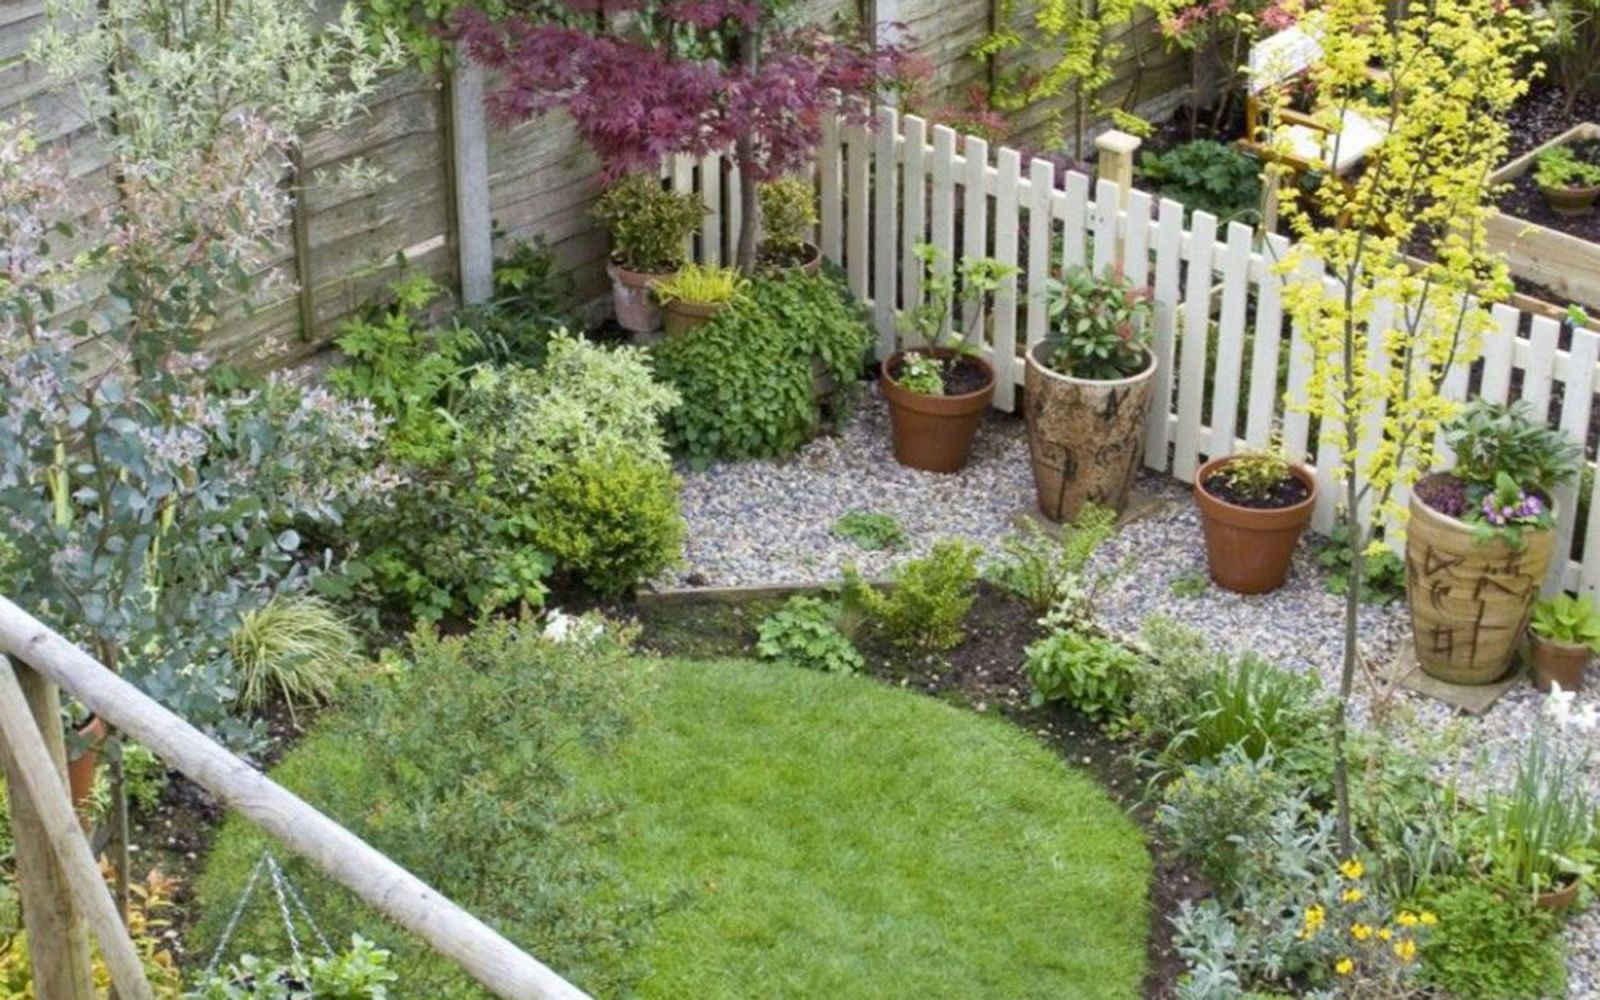 5 smart garden ideas on a budget Easy garden, Garden diy